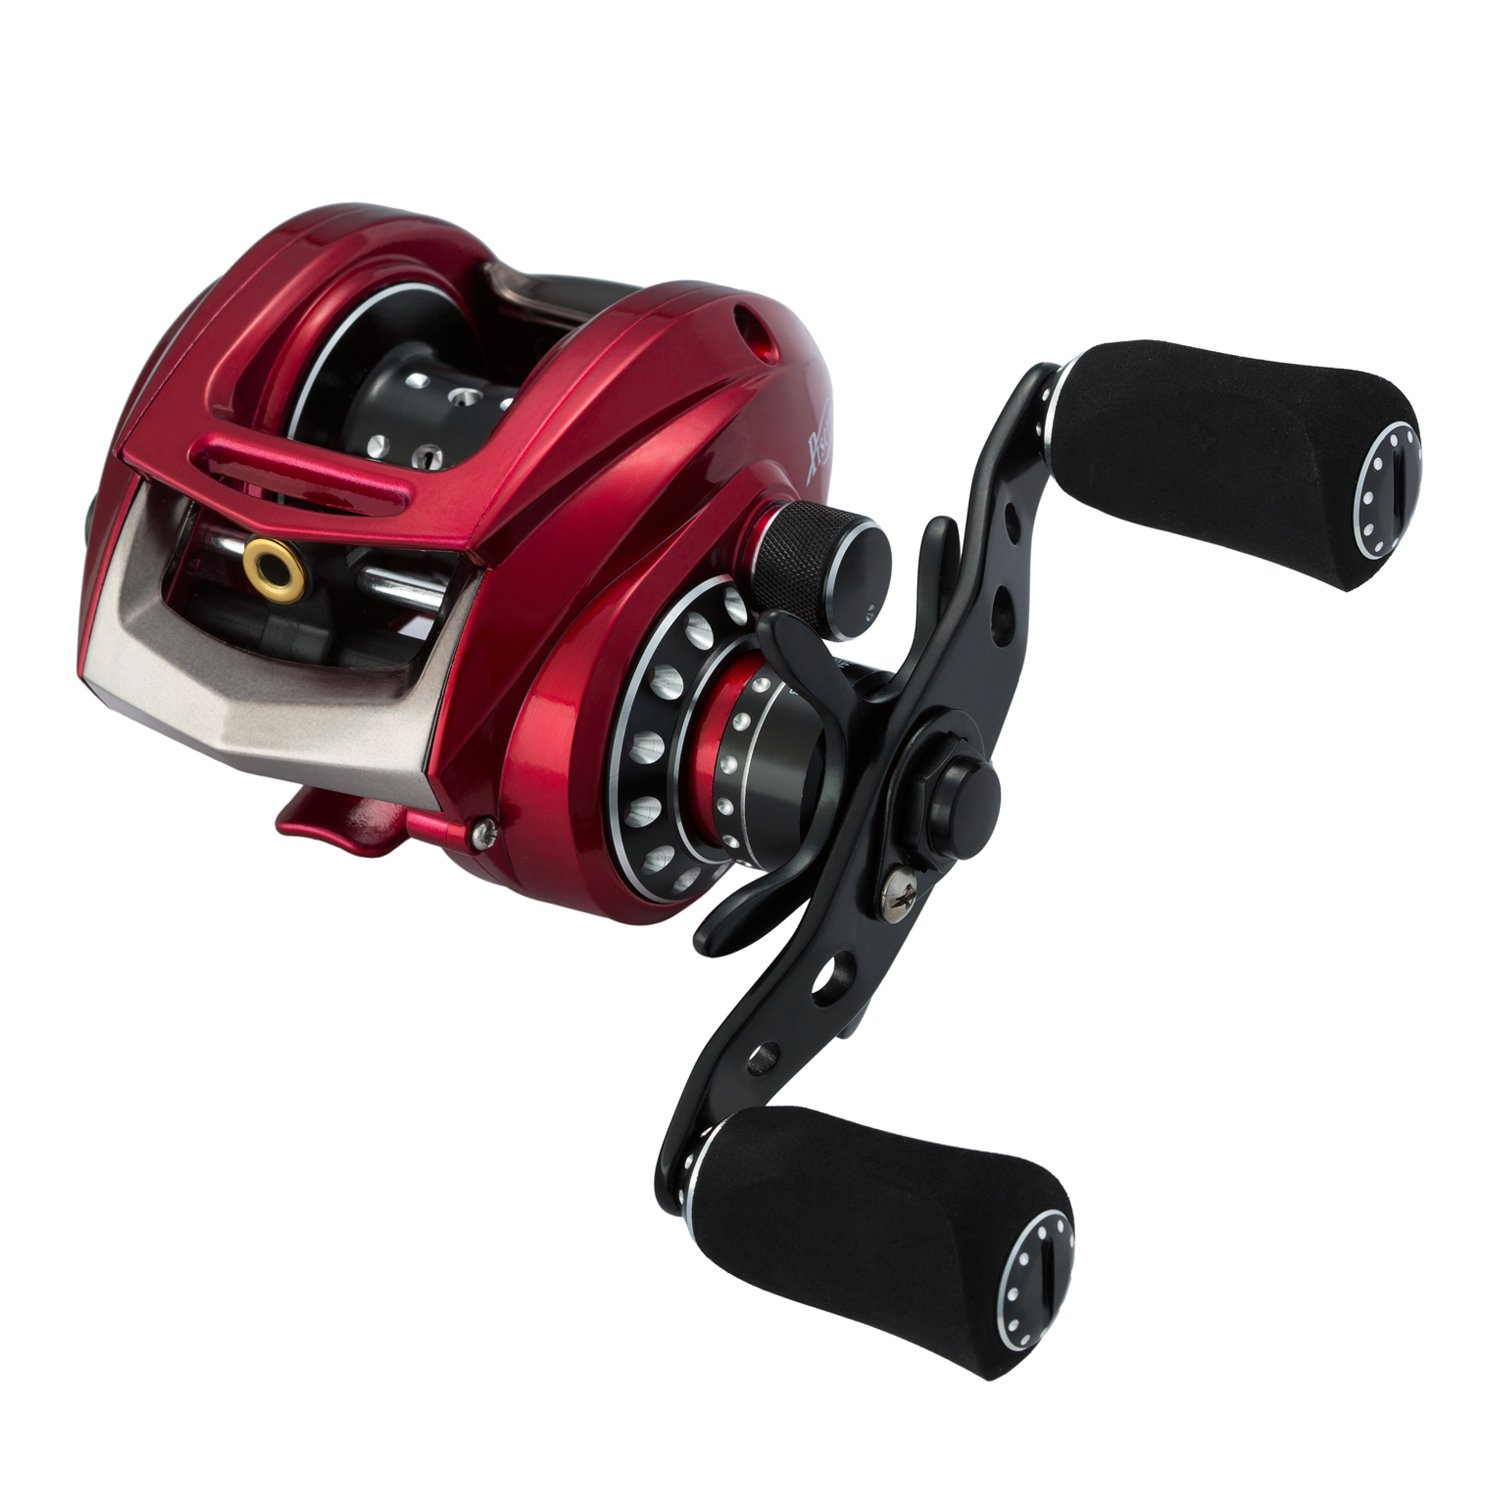 Best baitcasting reel under 100 the ultimate review 2018 for Best fishing rod and reel combo for beginners